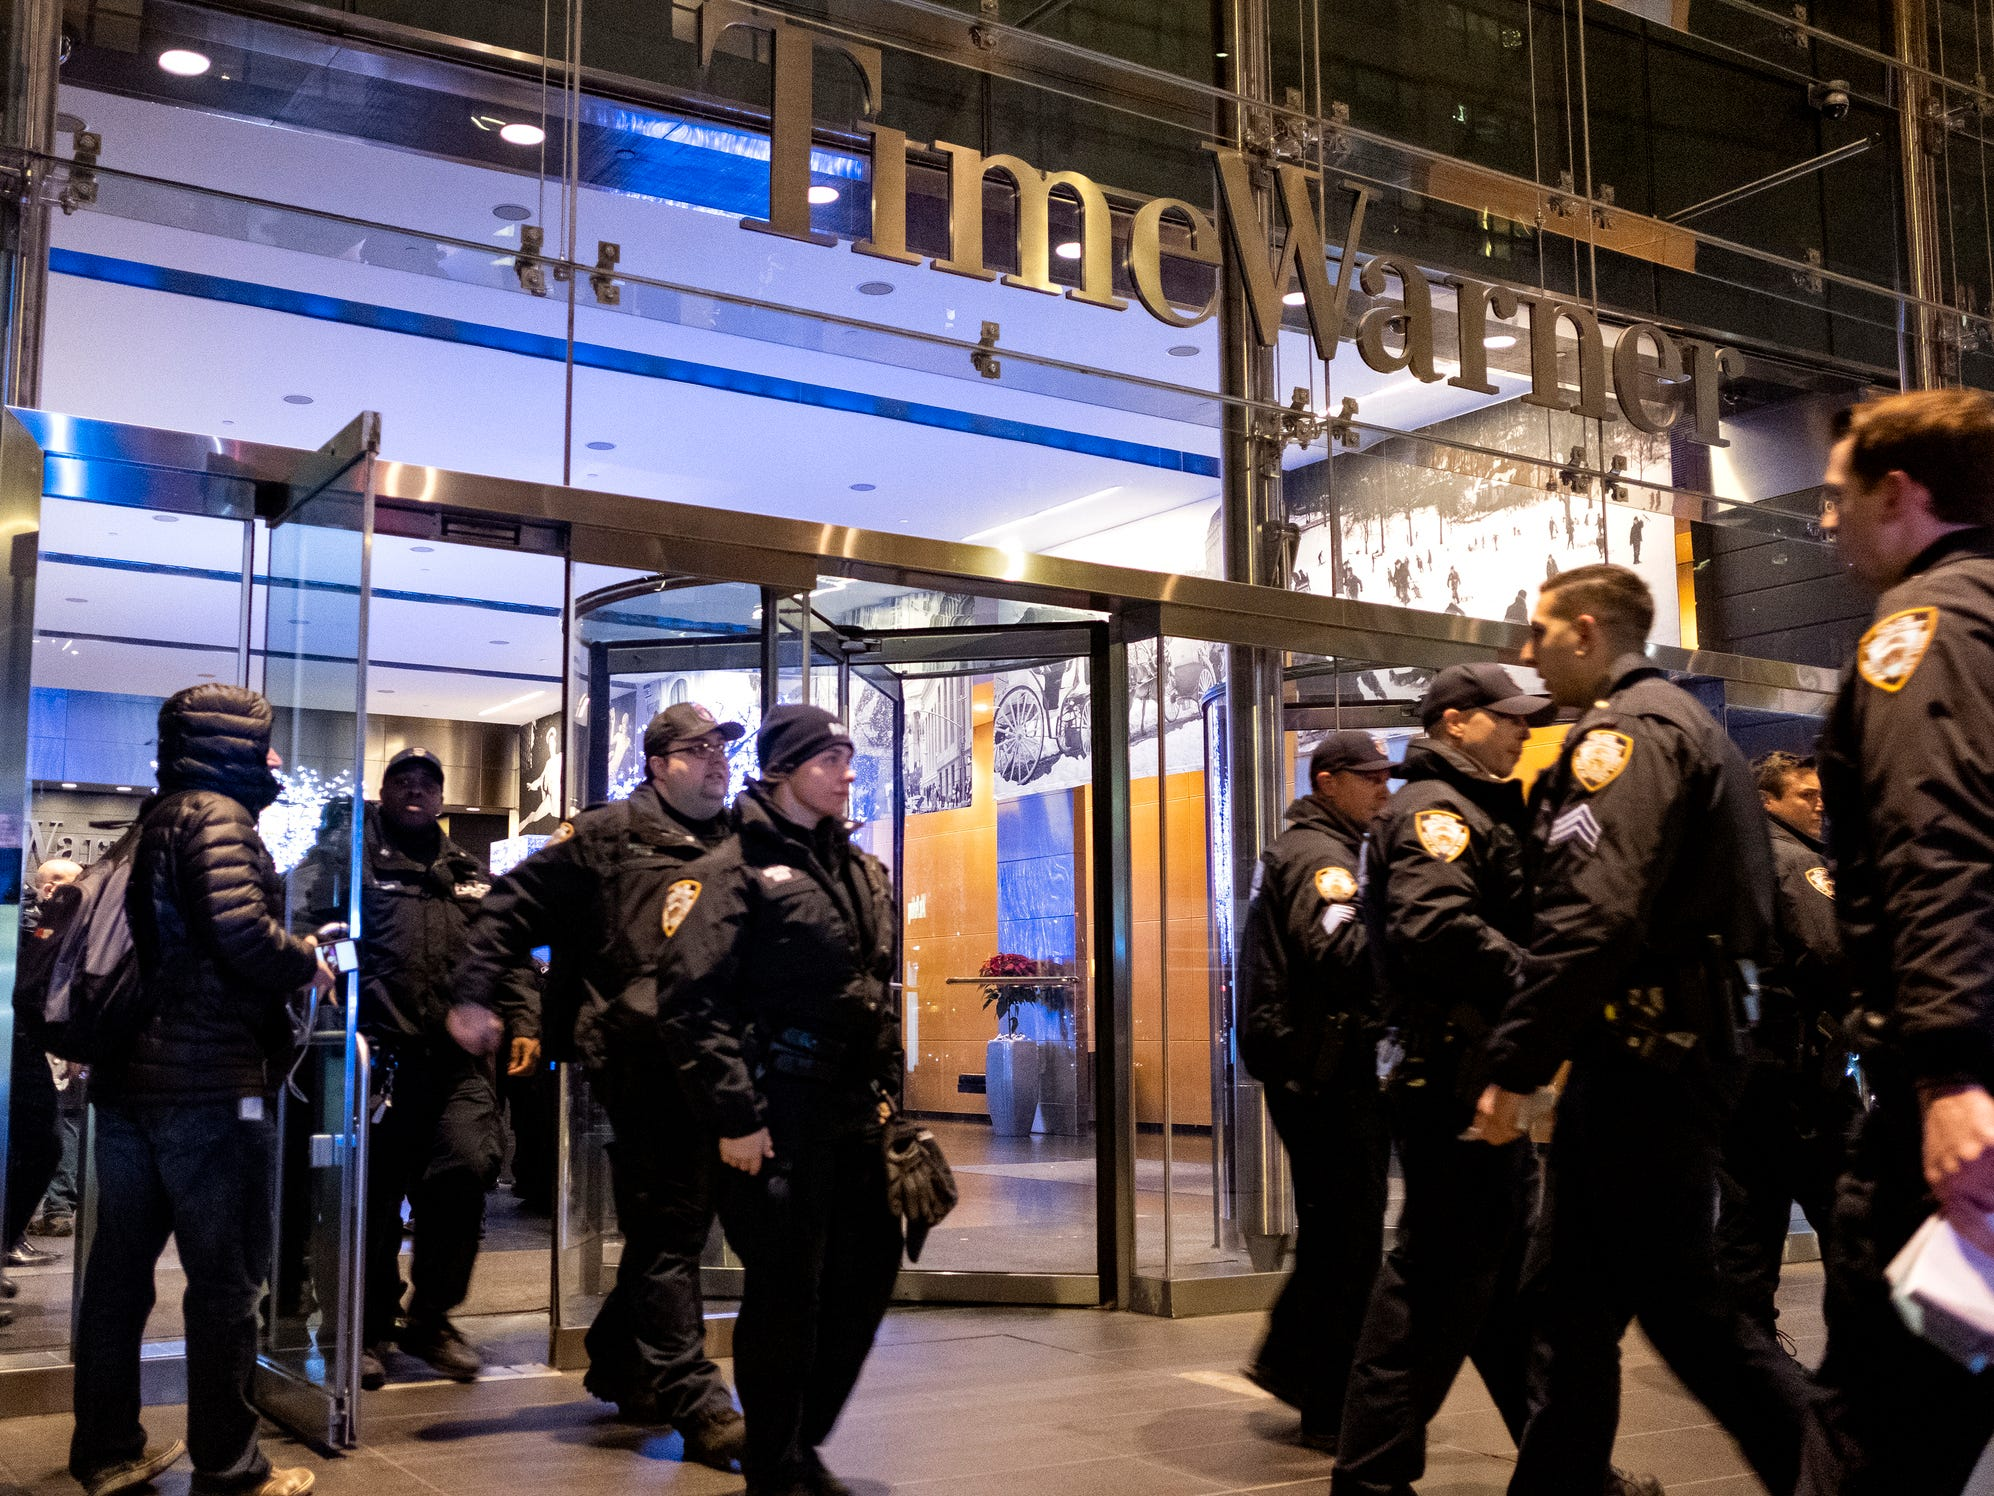 After the building was determined safe, New York City police officers walk from the Time Warner Center in New York Thursday, Dec. 6, 2018, after a bomb threat was called into the building and occupants were evacuated, including CNN employees.